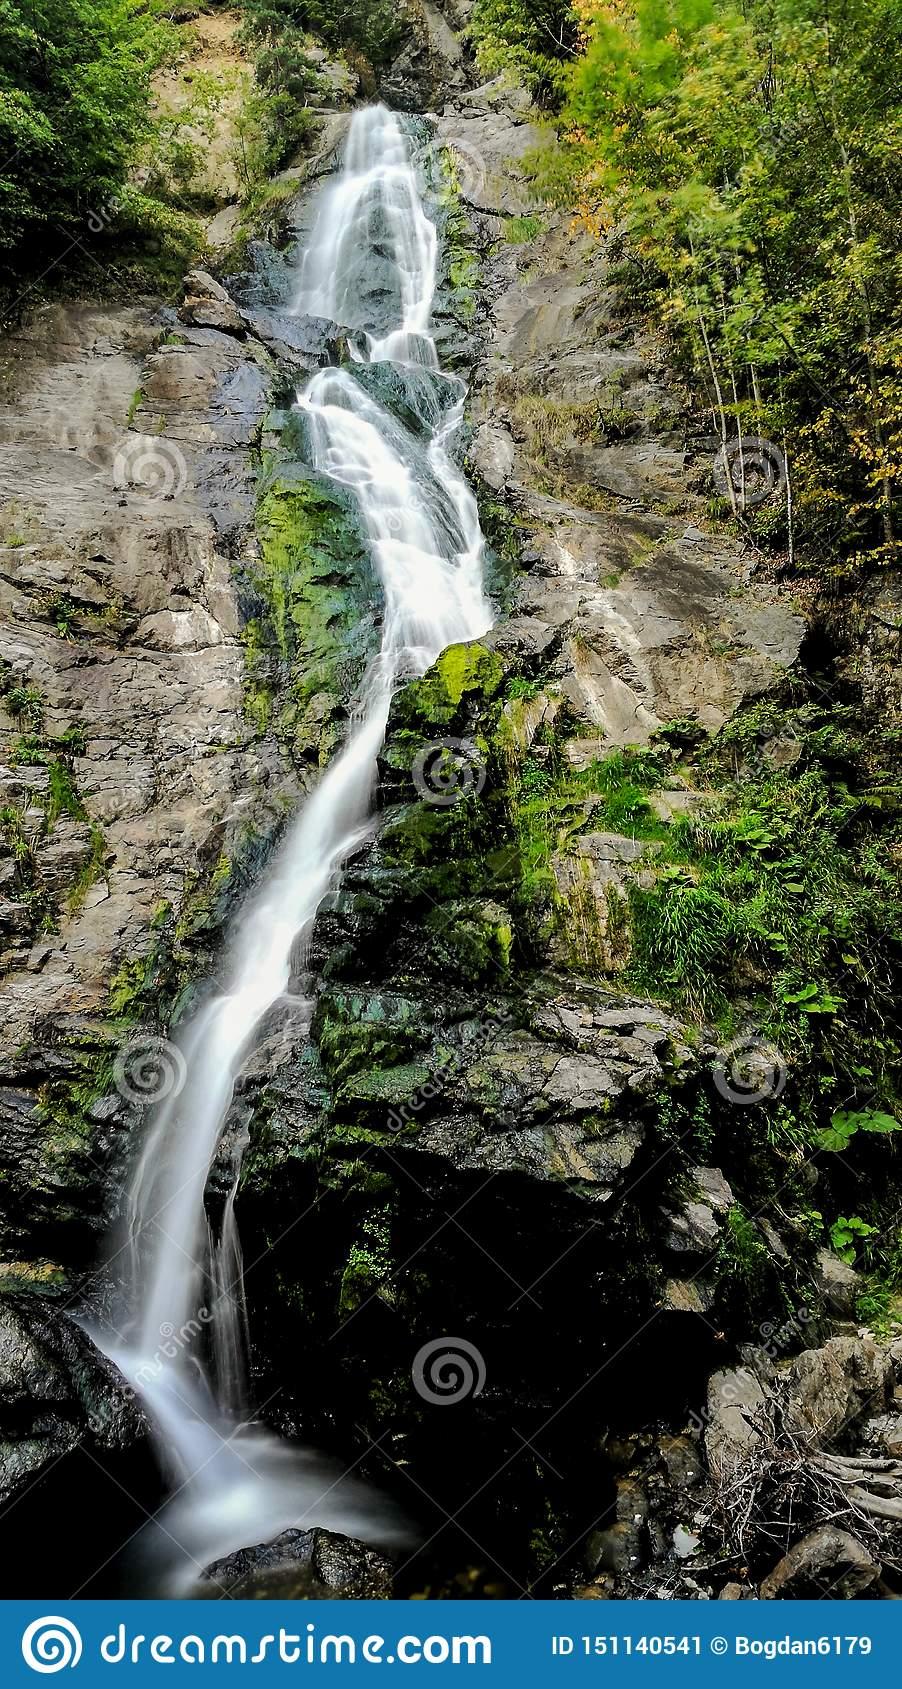 Walking through a wonderful mountain forest, I discovered a gorgeous waterfall falling from a considerable height of 20 m